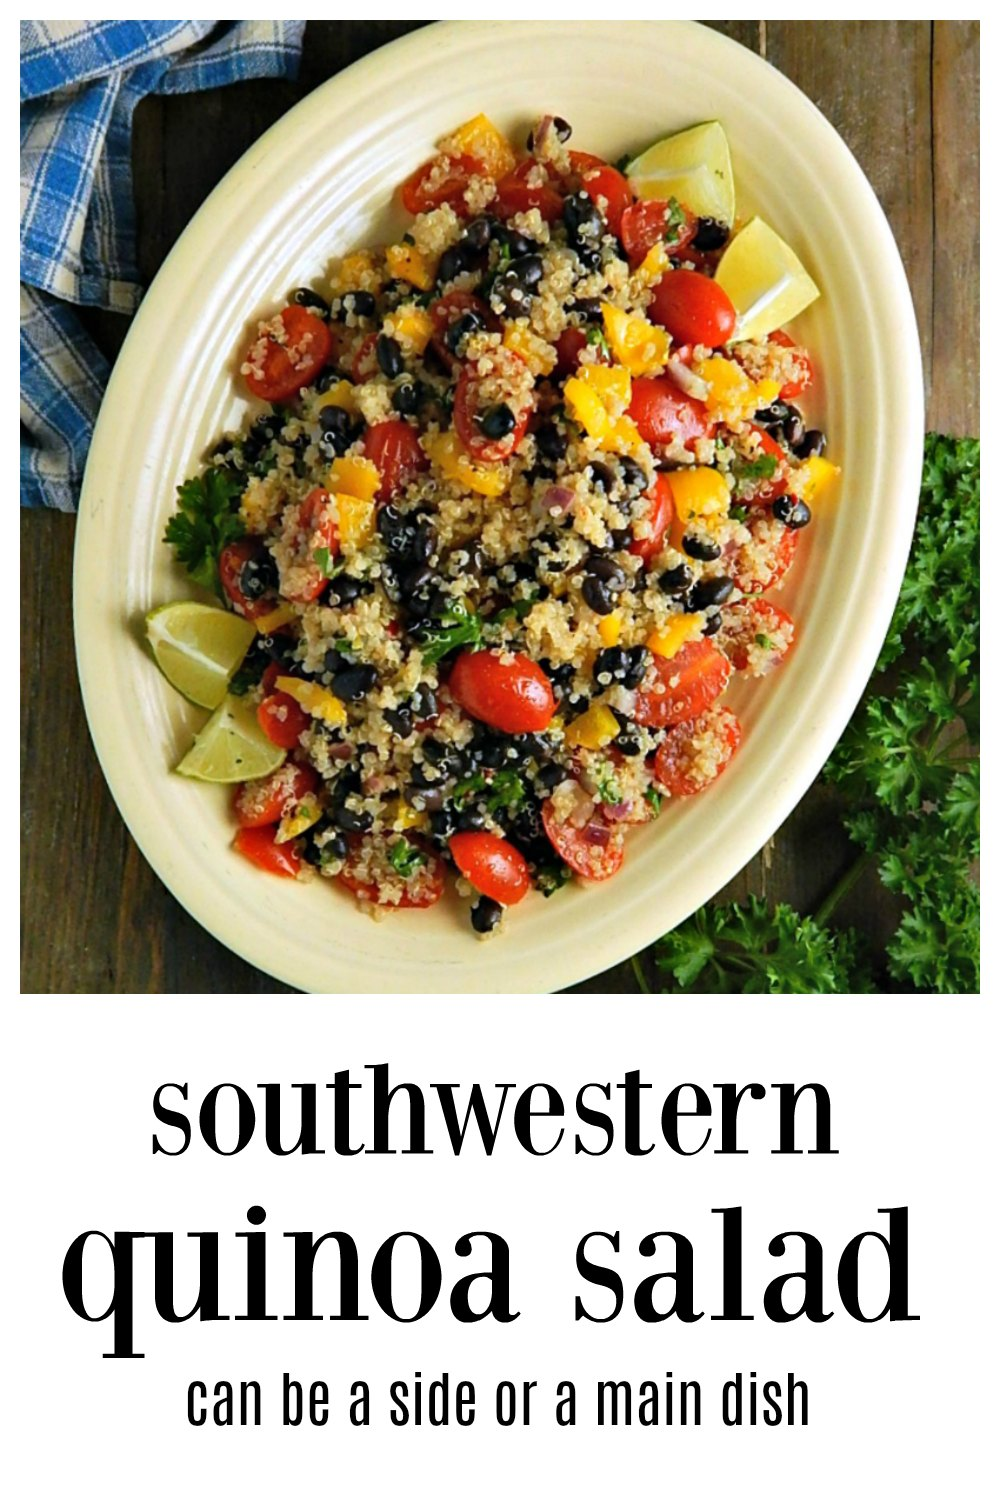 Healthy ingredients, tomatoes, peppers, beans & quinoa, and bold Southwestern flavors make a winning combination! Main dish vegetarian or a side. #QuinoaSalad #SouthwesternQuinoaSalad #TomatoPeppersQuinoaSalad